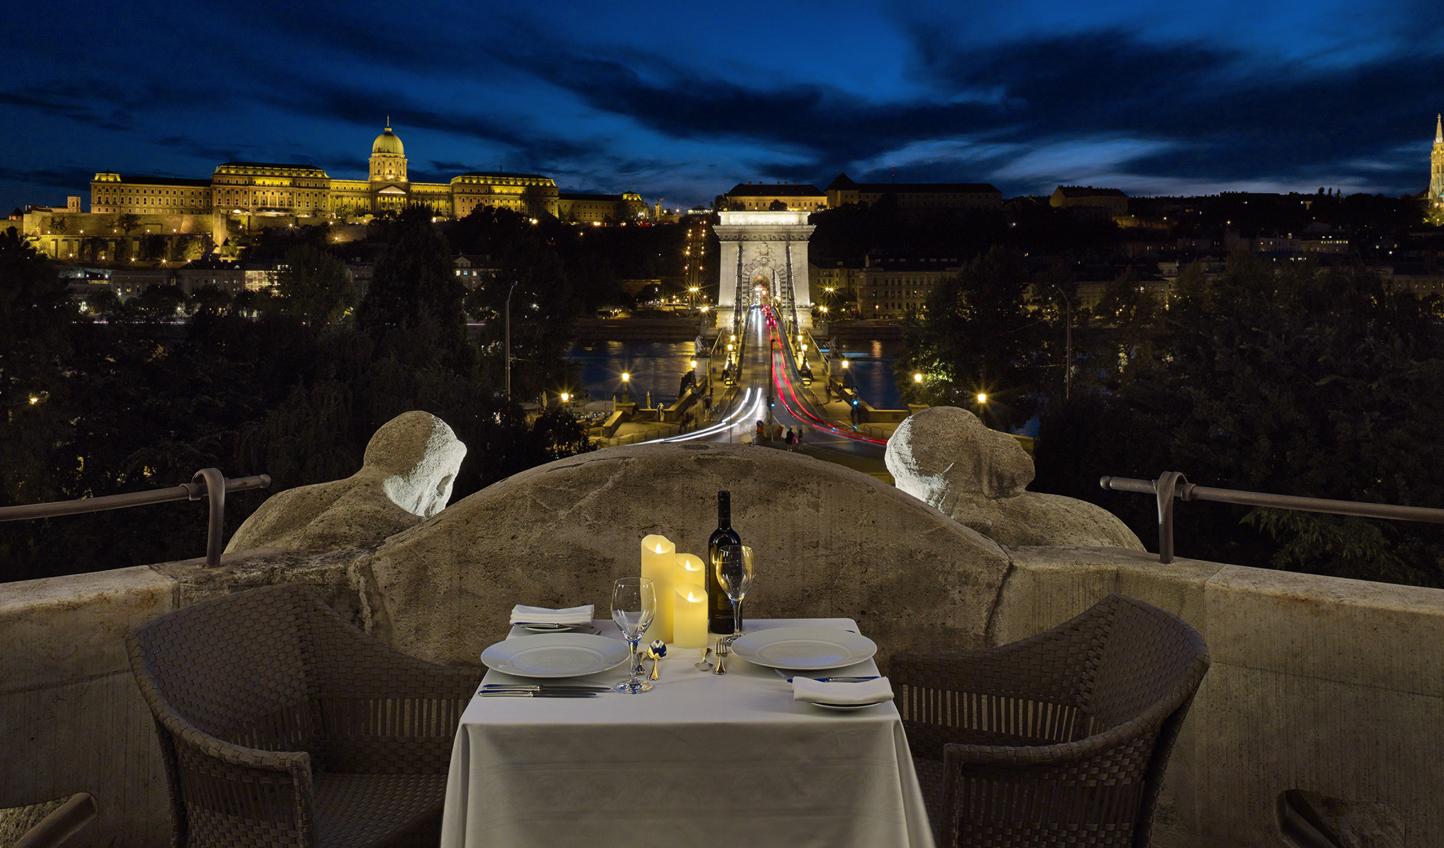 Now that's what we call dinner with a view